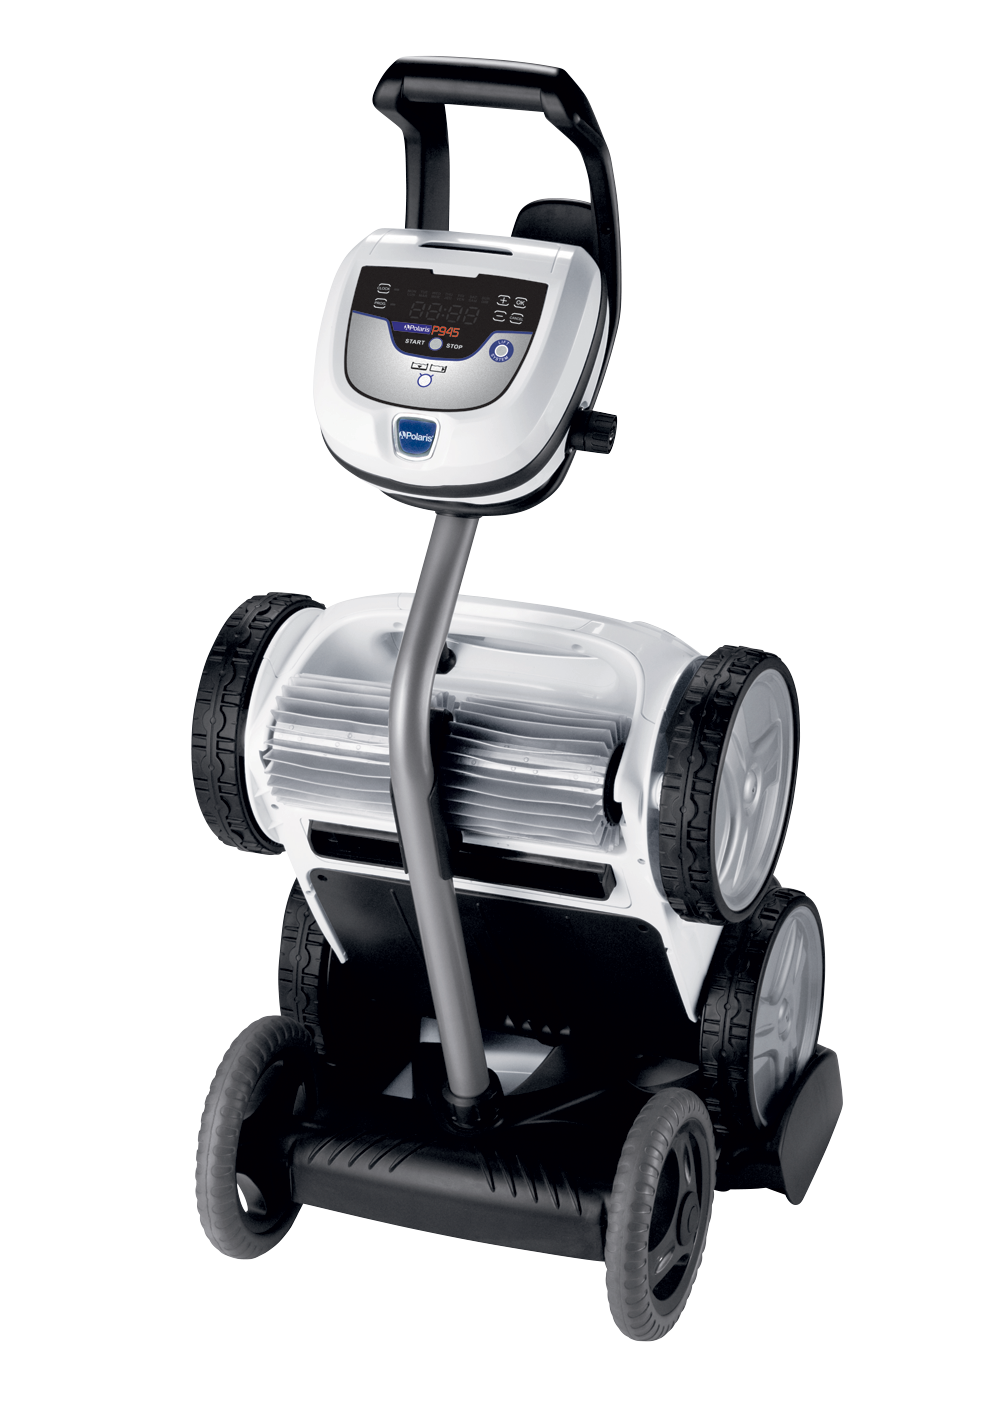 Polaris P945 Robotic Pool Cleaner